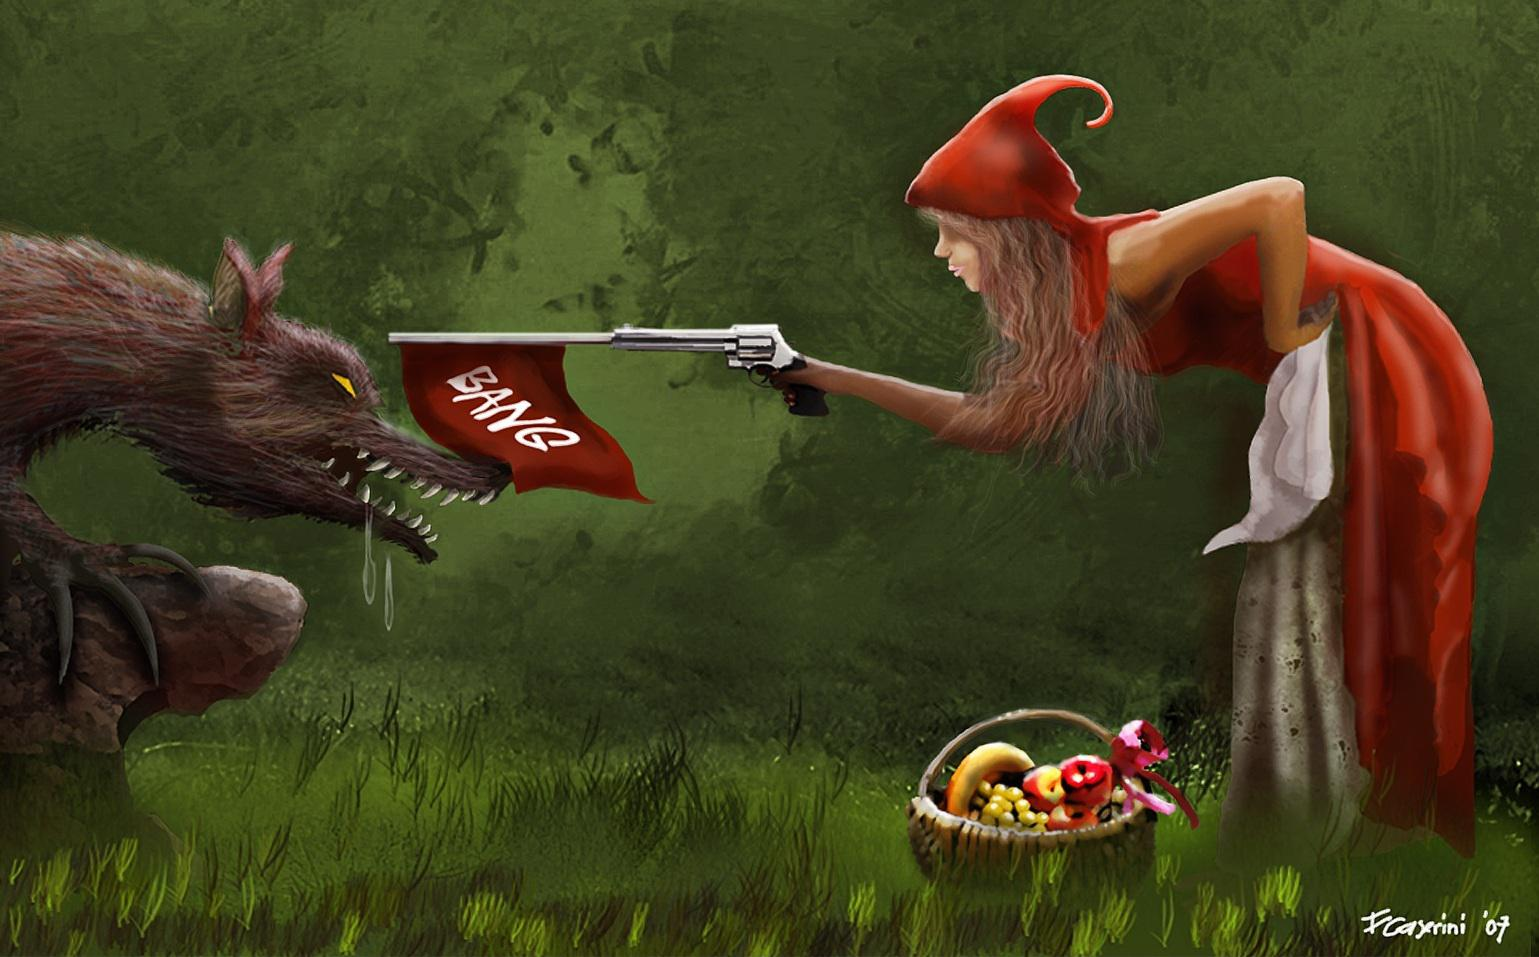 Free Download Little Red Riding Hood Hq Wallpaper 110456 1539x957